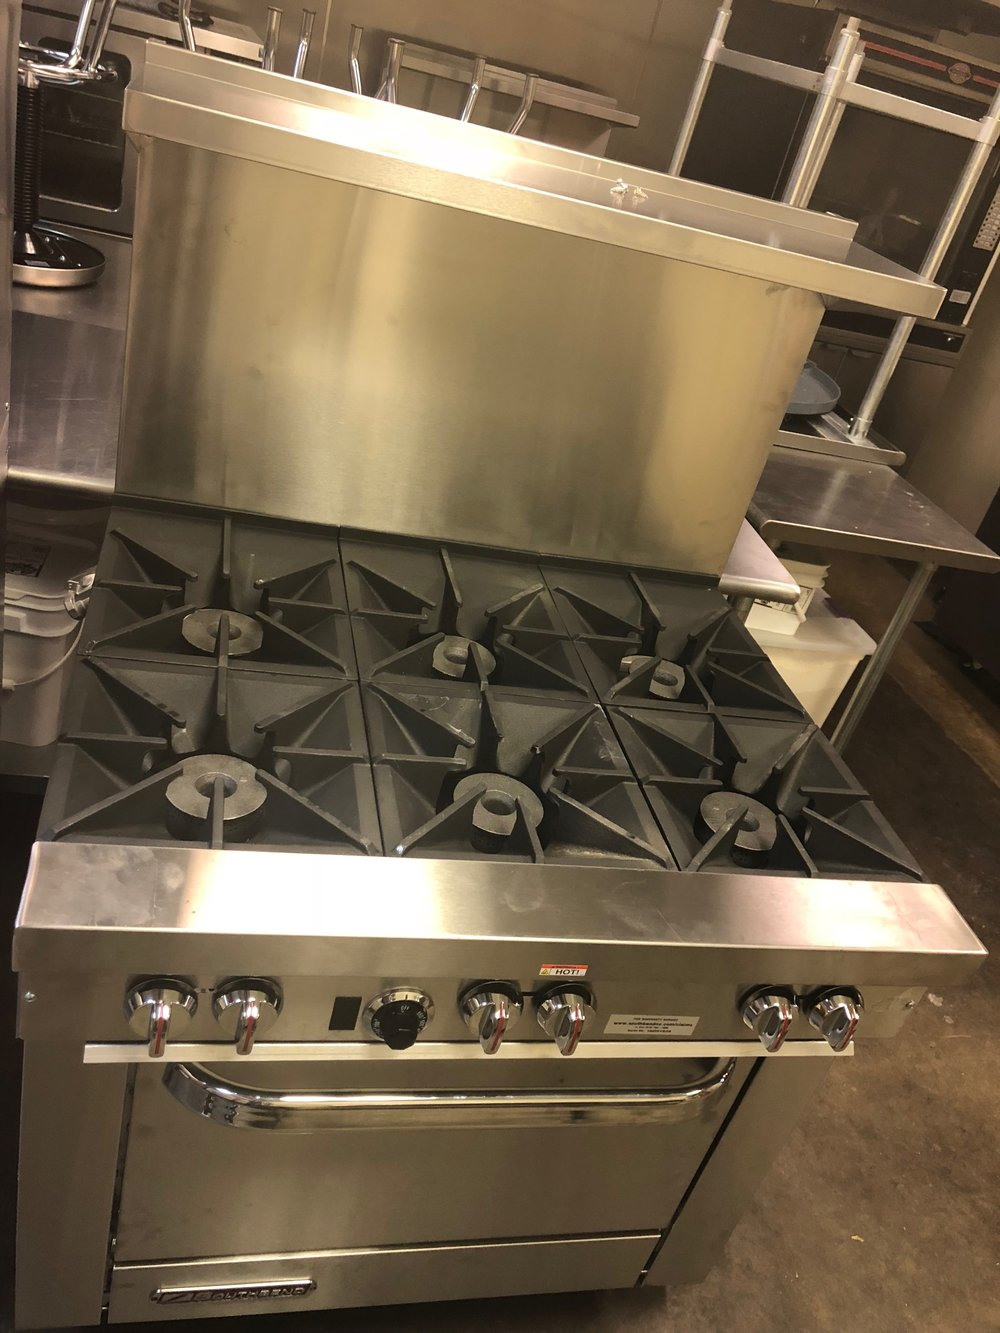 Under the hood, there will be a double deck gas oven and two 6 burner ranges.